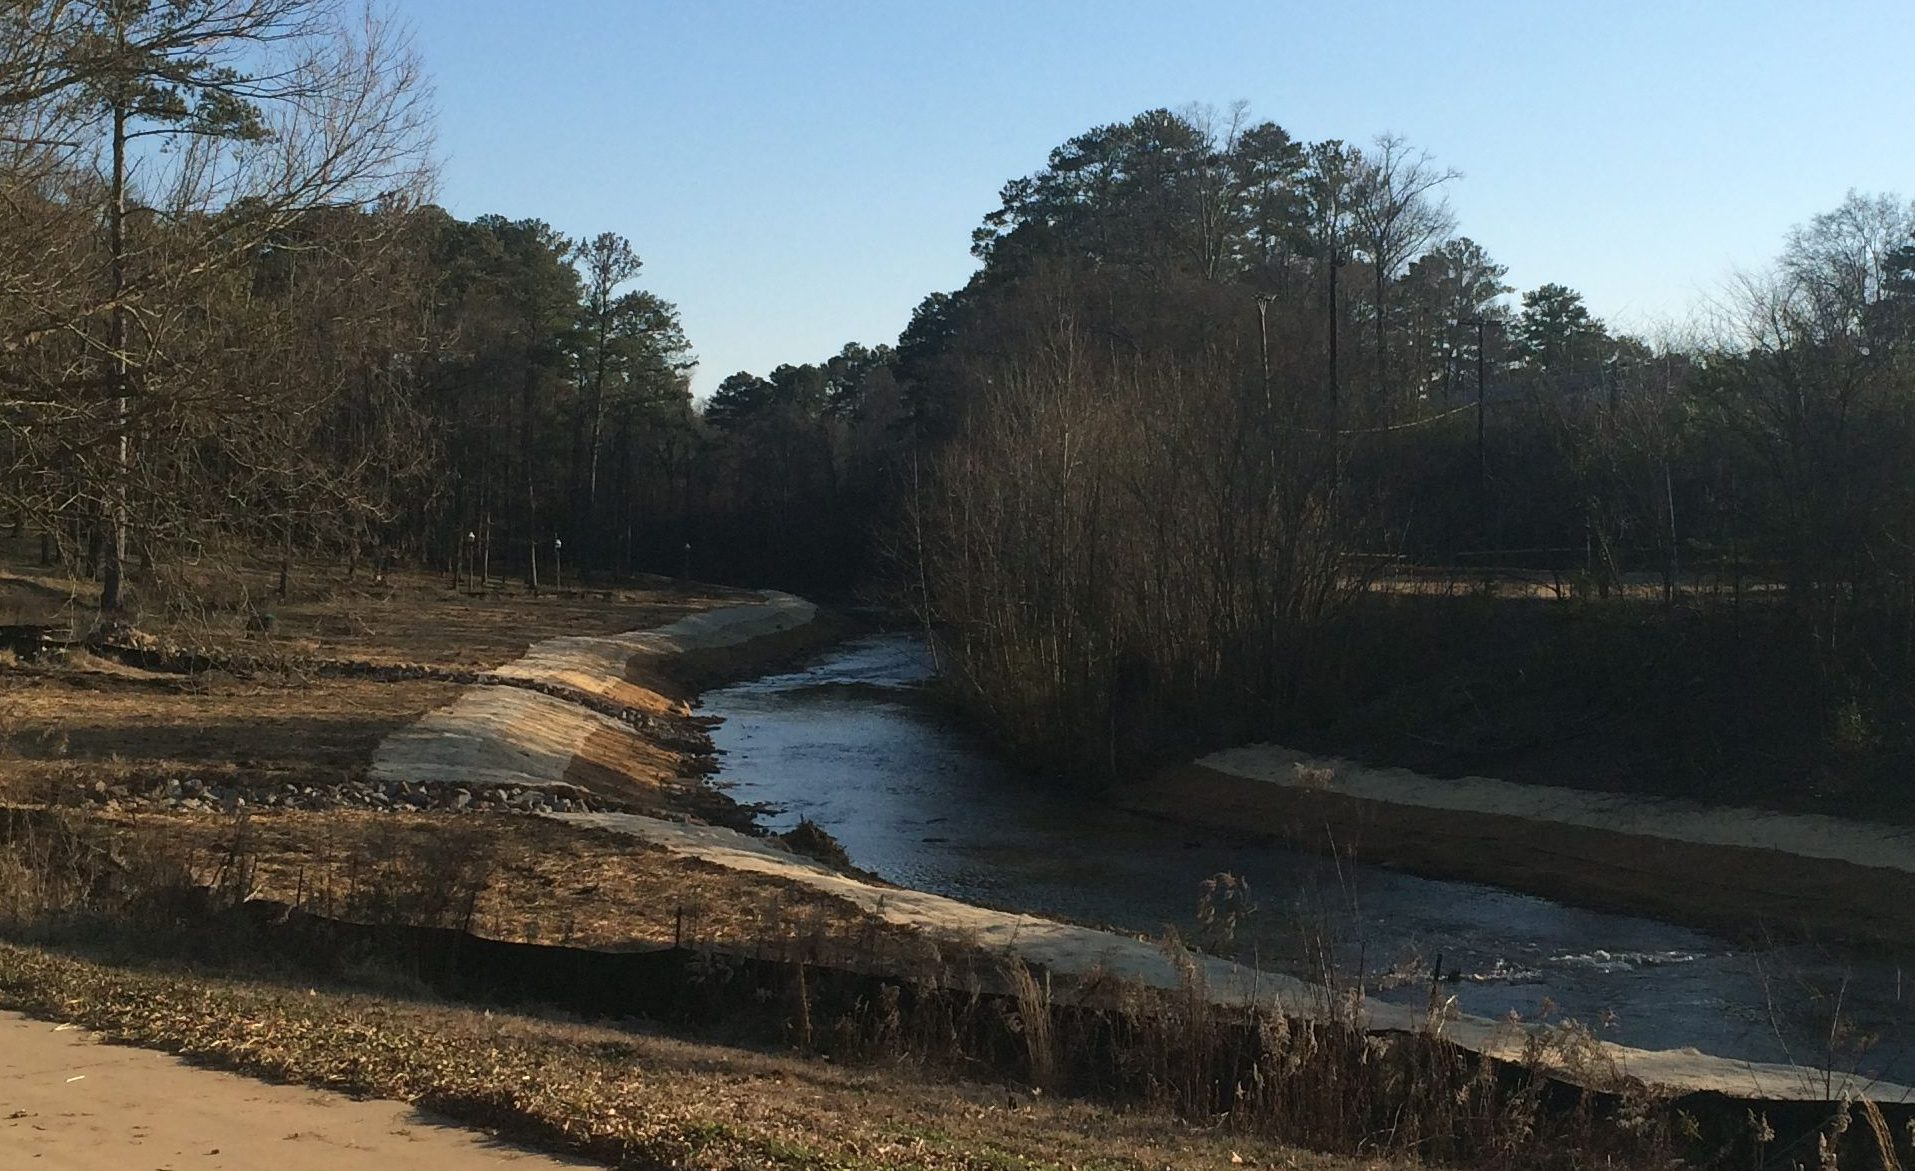 People advised to avoid Cahaba River near Hwy. 31 in Riverchase after force main break